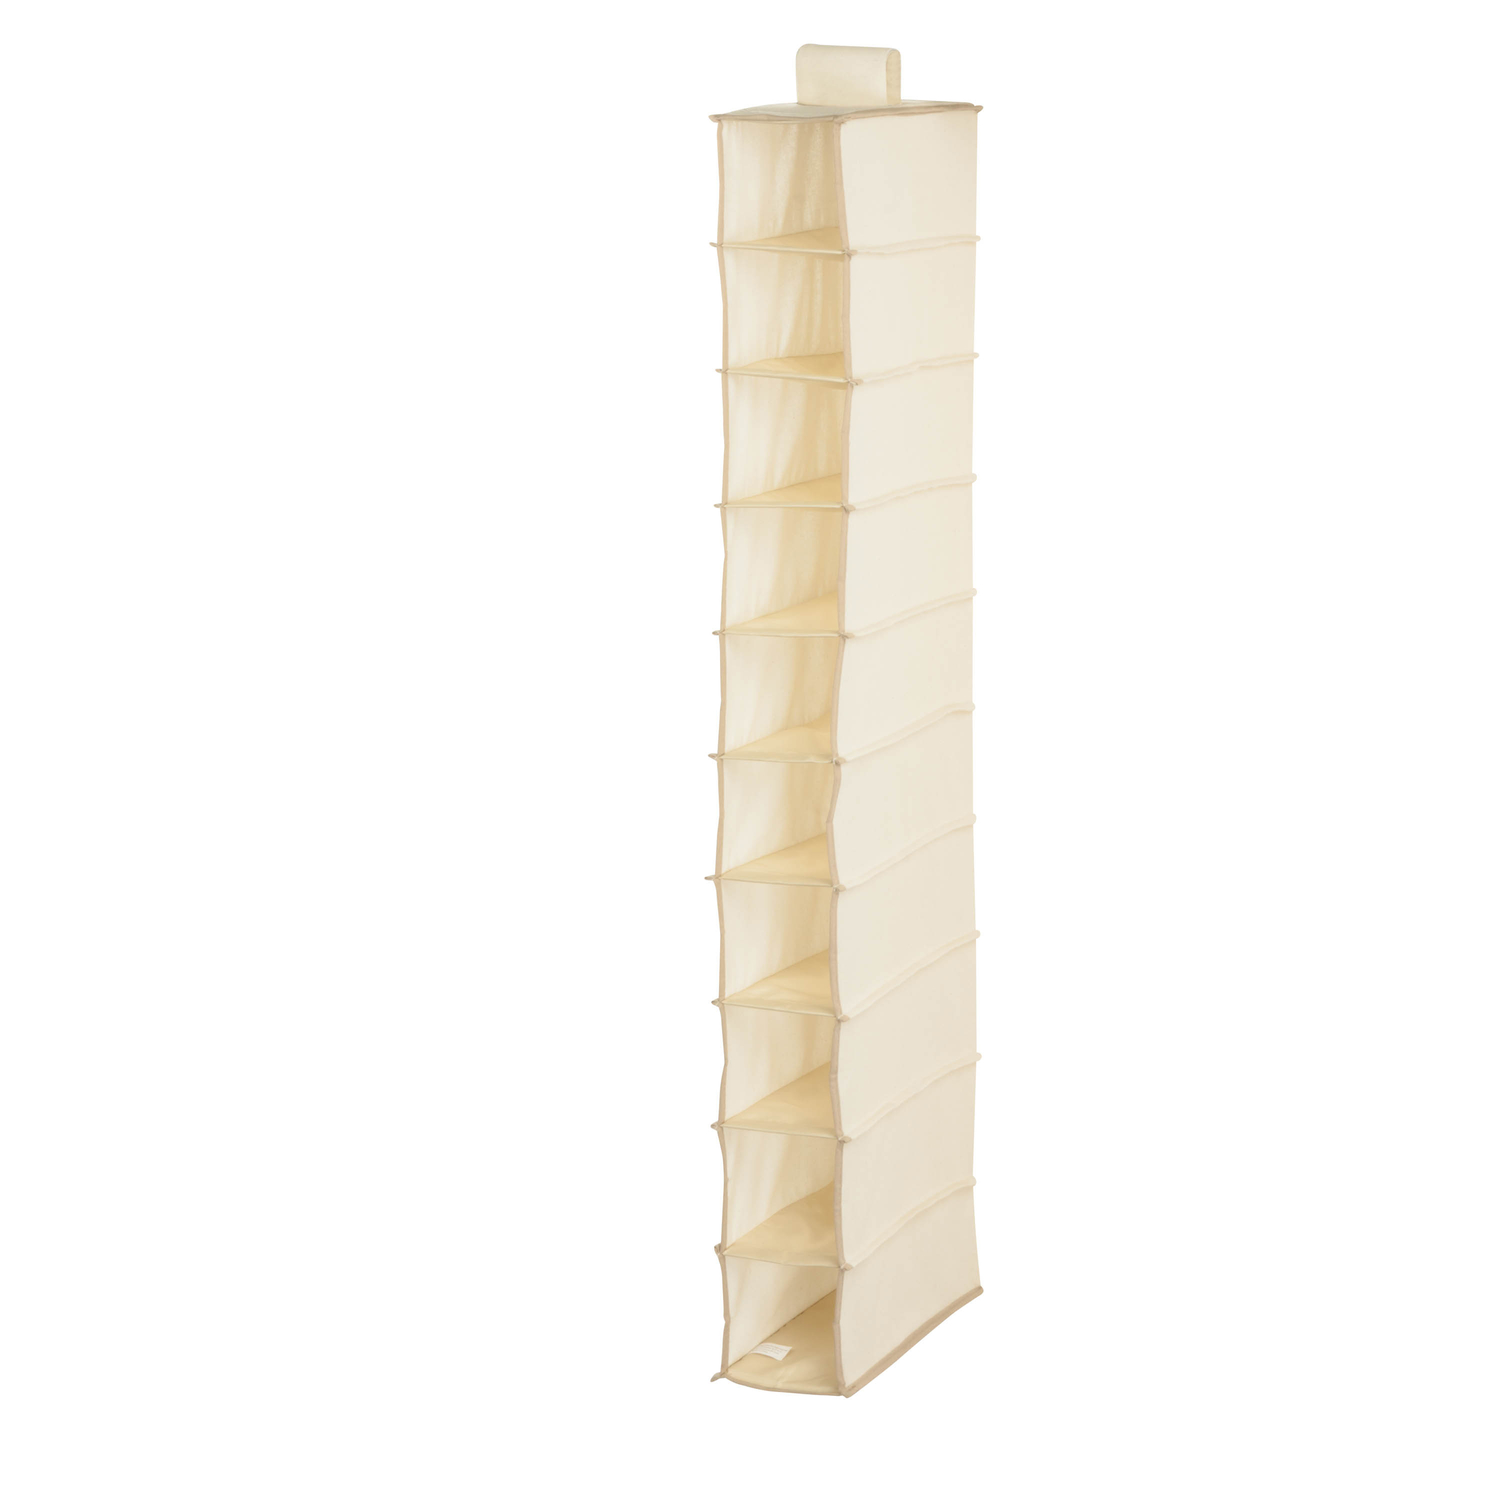 Honey Can Do  54 in. H x 6 in. W x 12 in. L Hanging Vertical Closet Organizer  1 pk Canvas